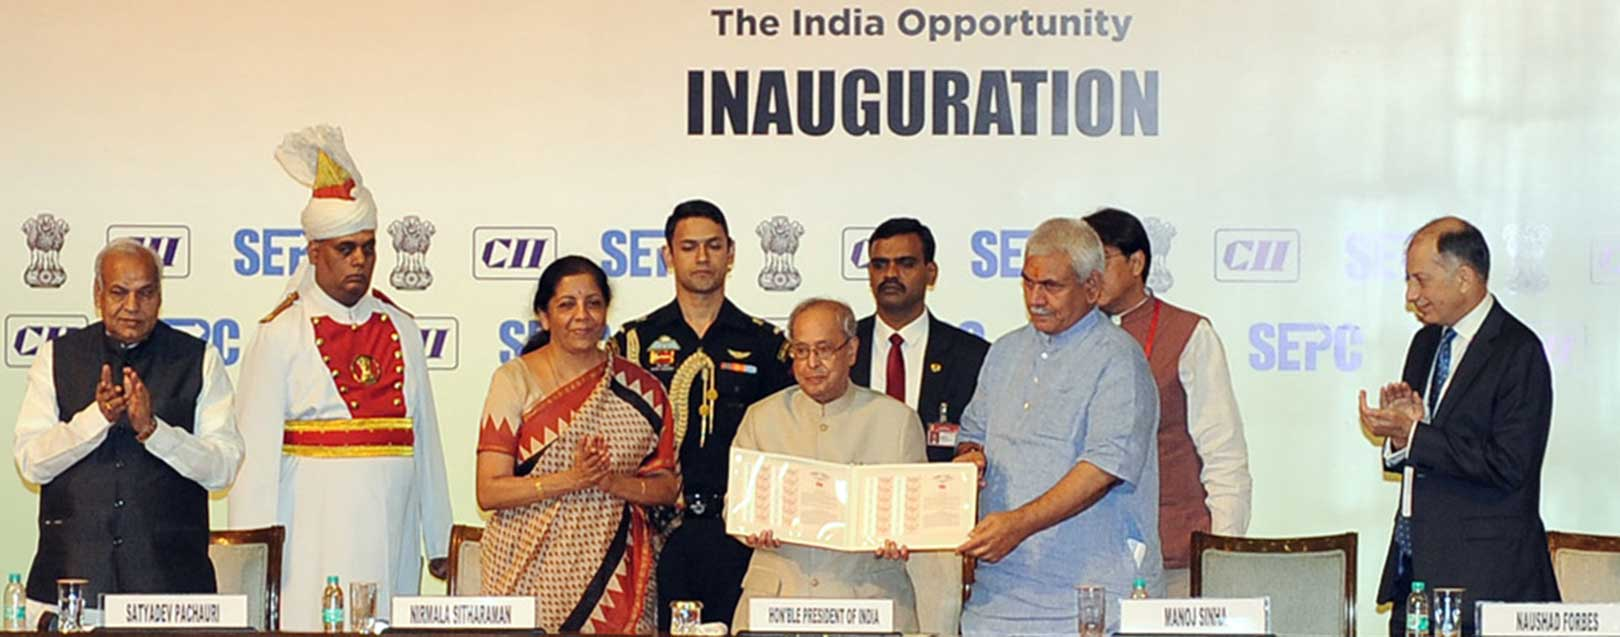 GES 2017 to open new doors for services sector